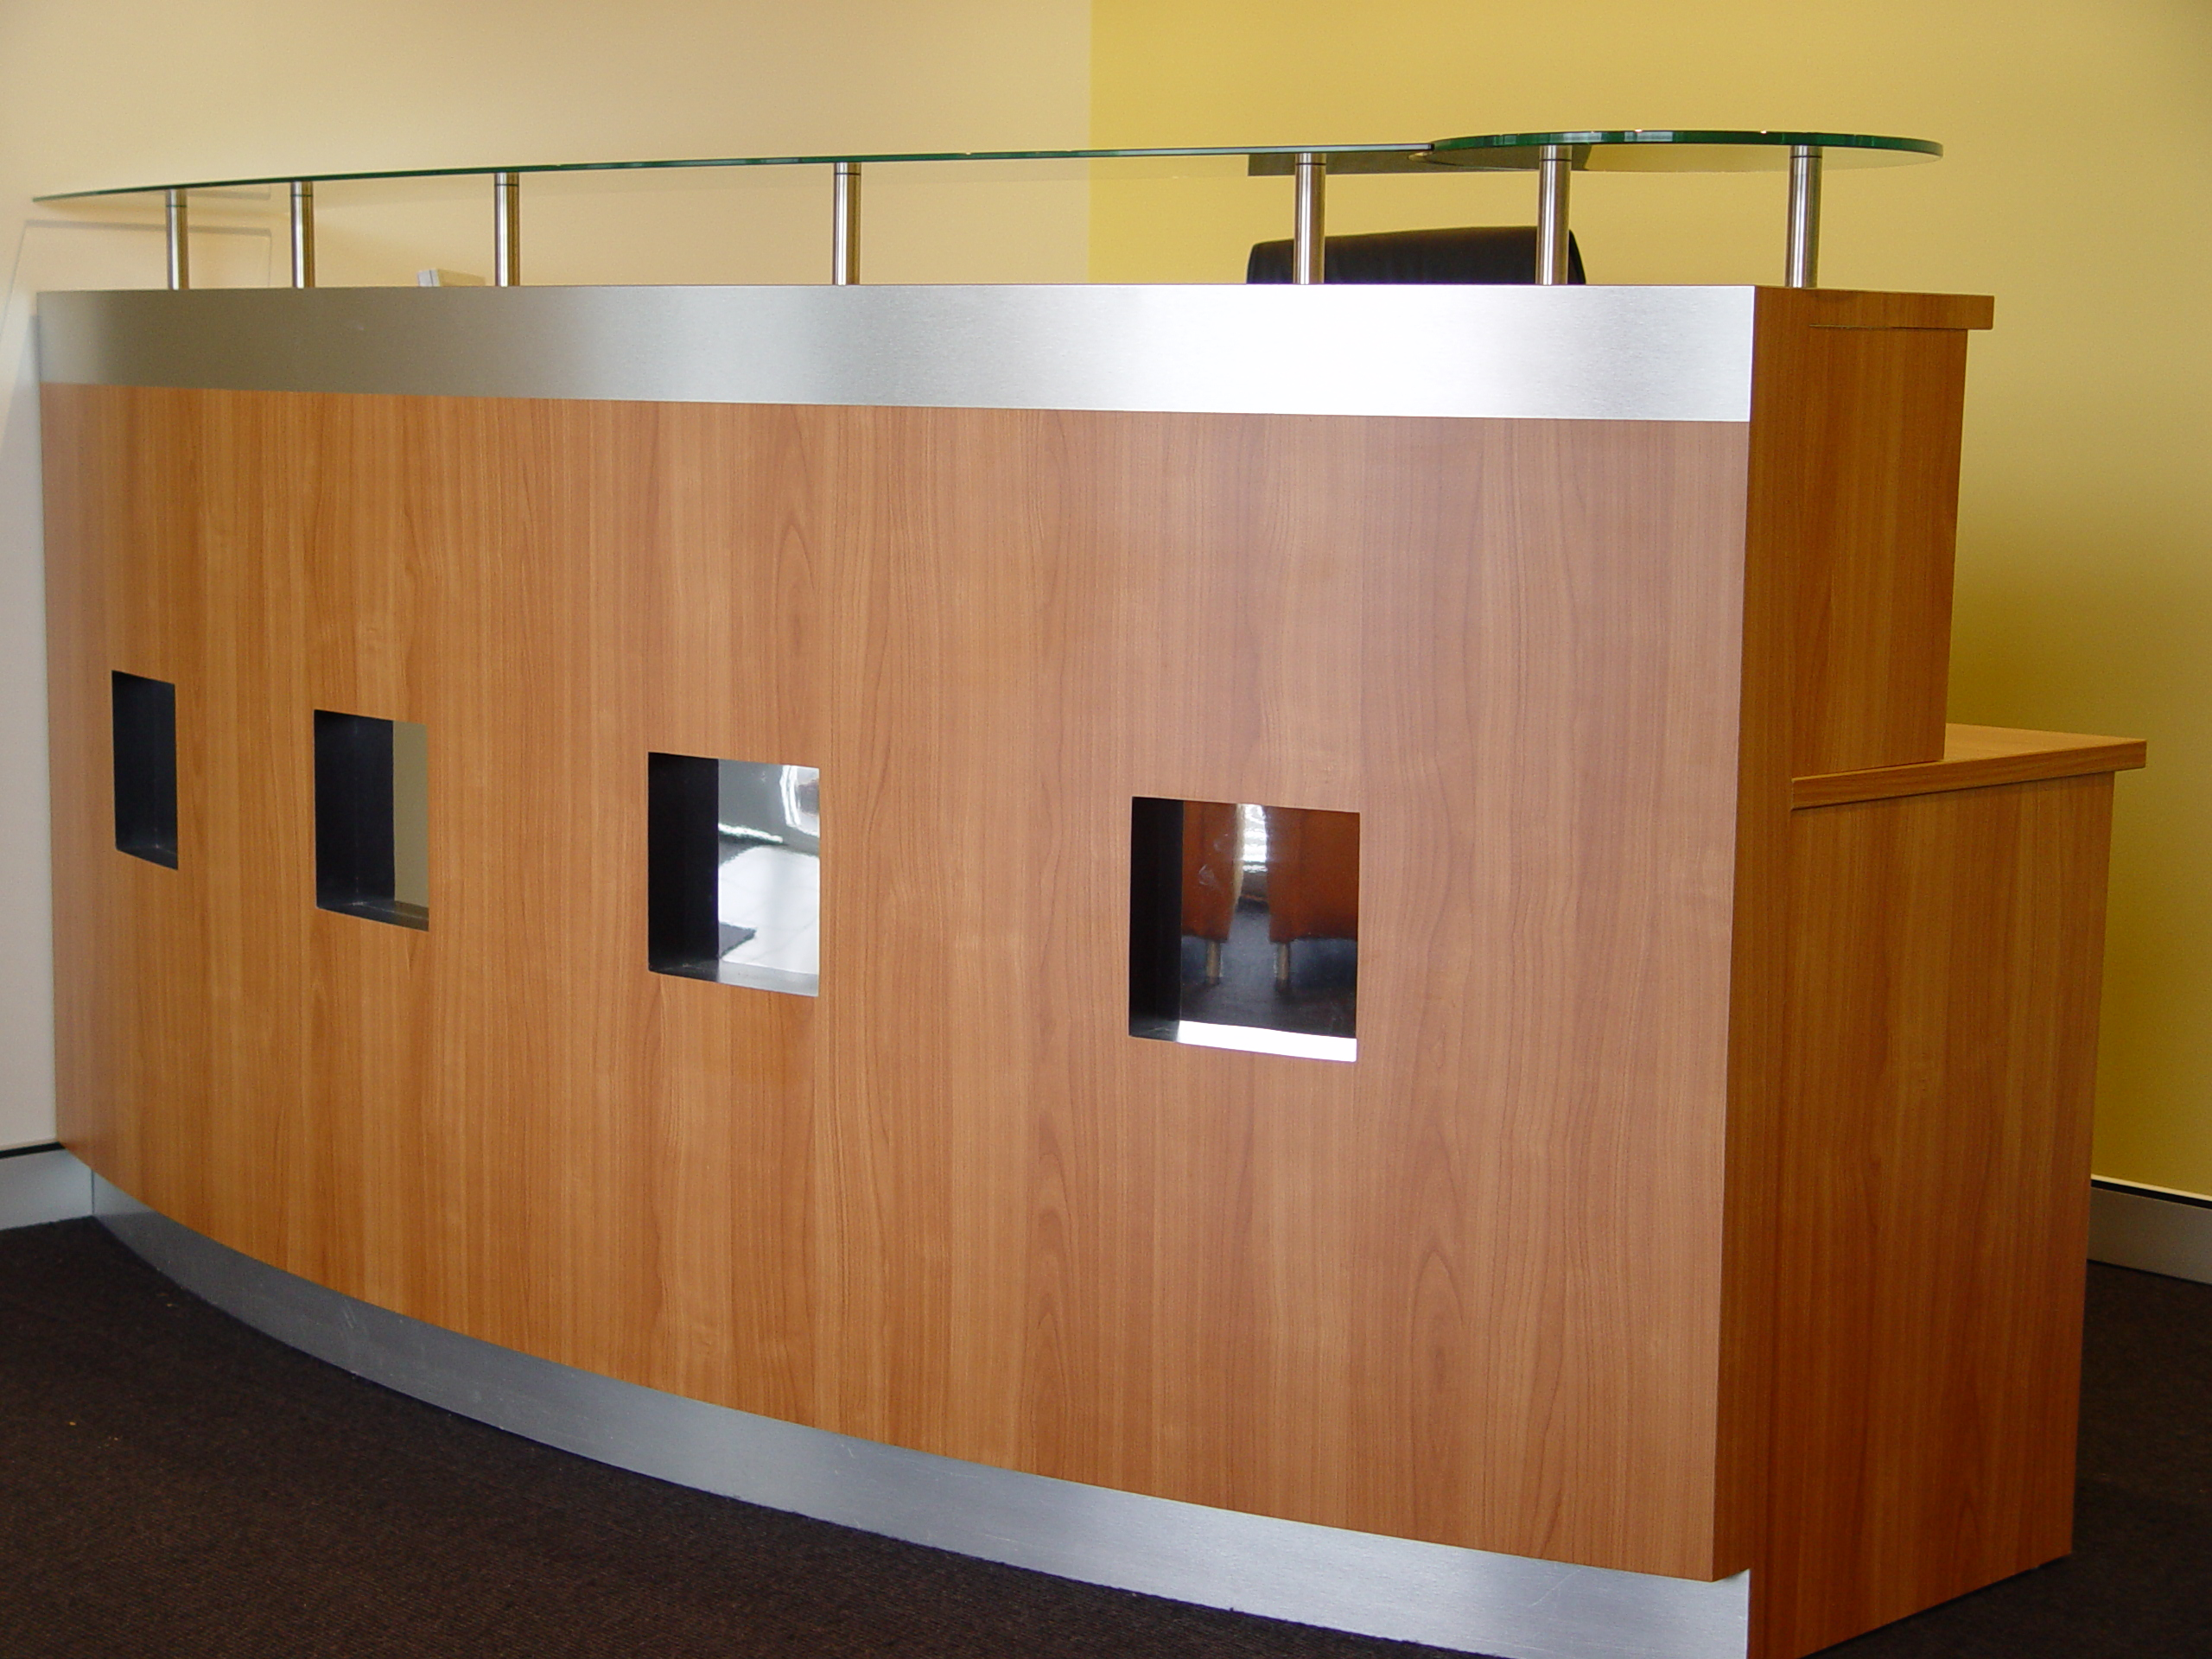 melamine counter with mirror insets